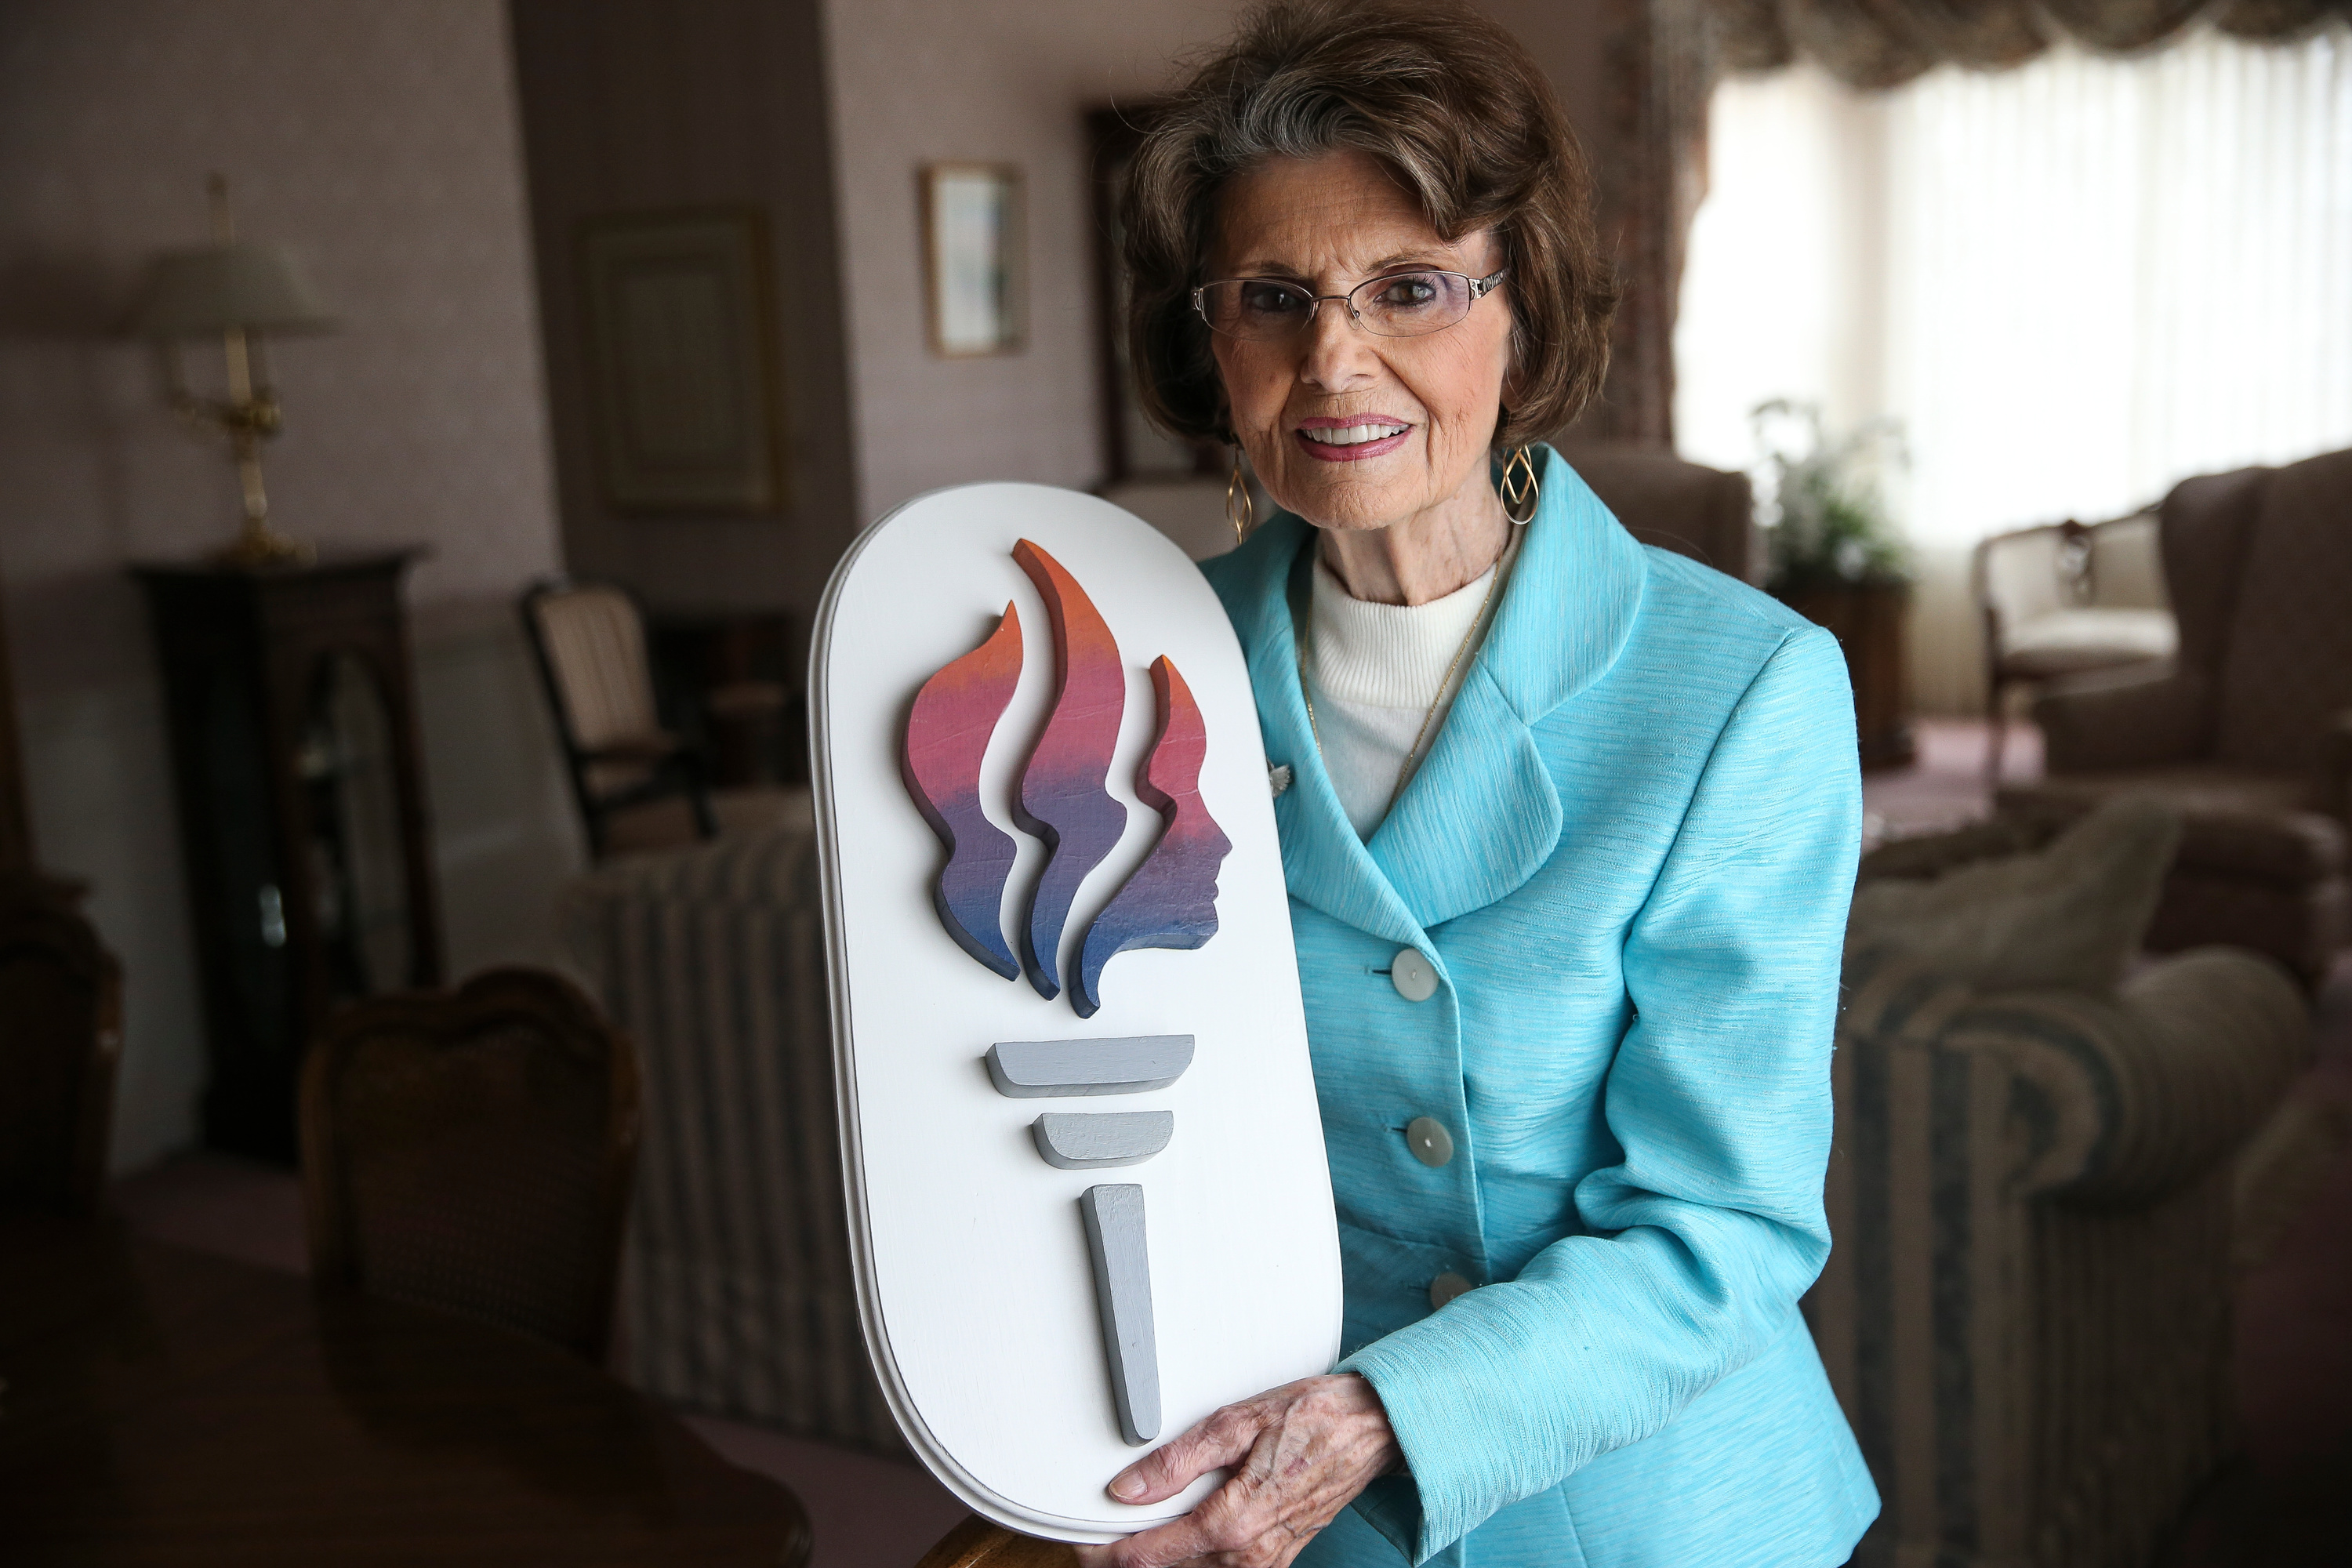 Former LDS Young Women General President Ardeth G. Kapp poses for a photo with a wood Young Women logo at her home in Bountiful on Thursday, Jan. 11, 2018.